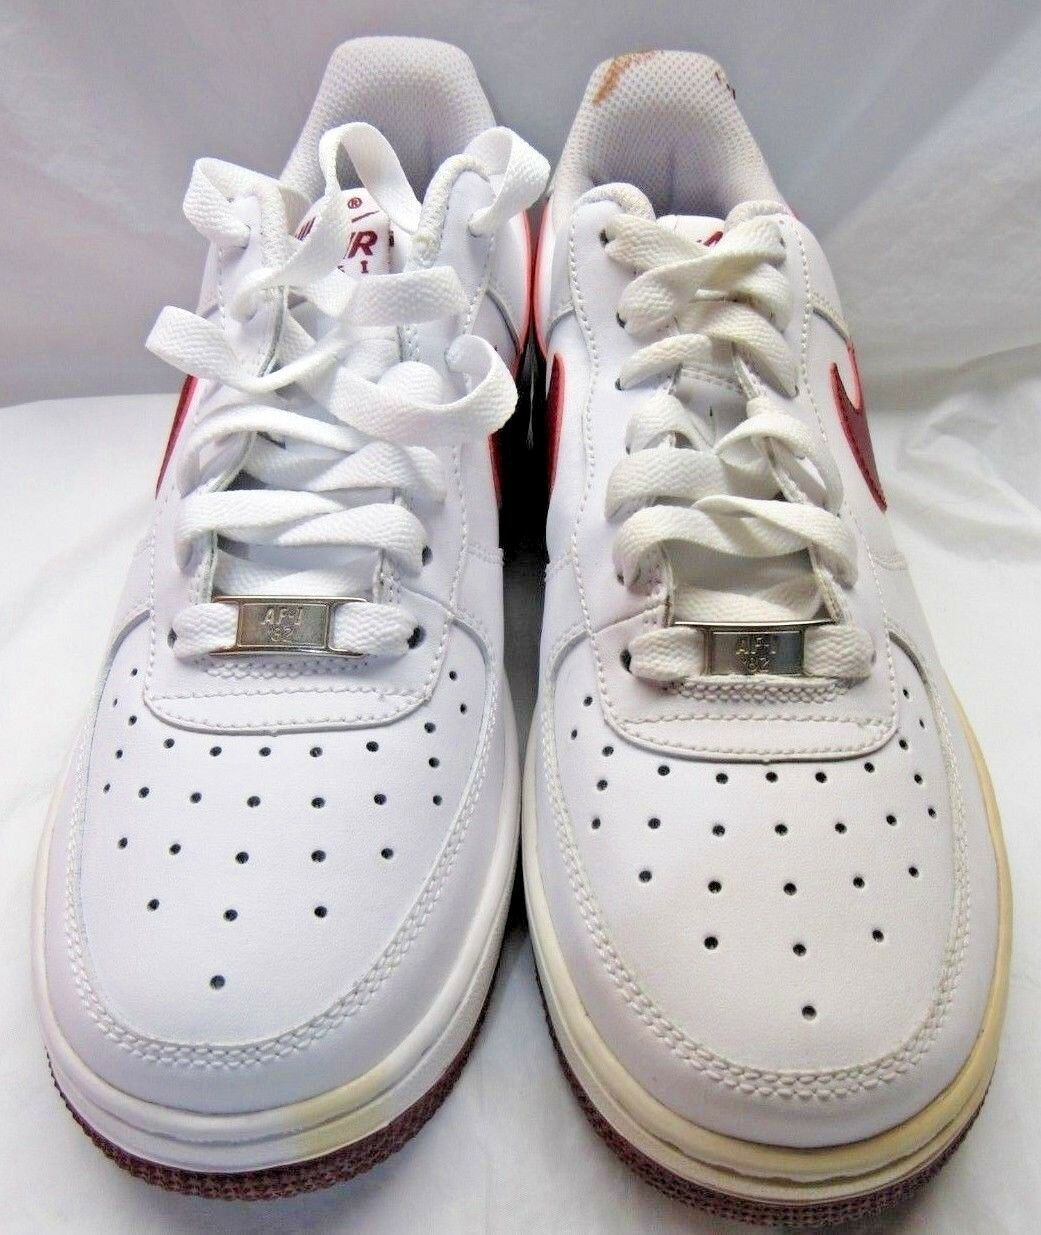 NIKE 314192-165 AIR FORCE 1 (GS) White upper Red Sole Sneakers Size 5.5Y